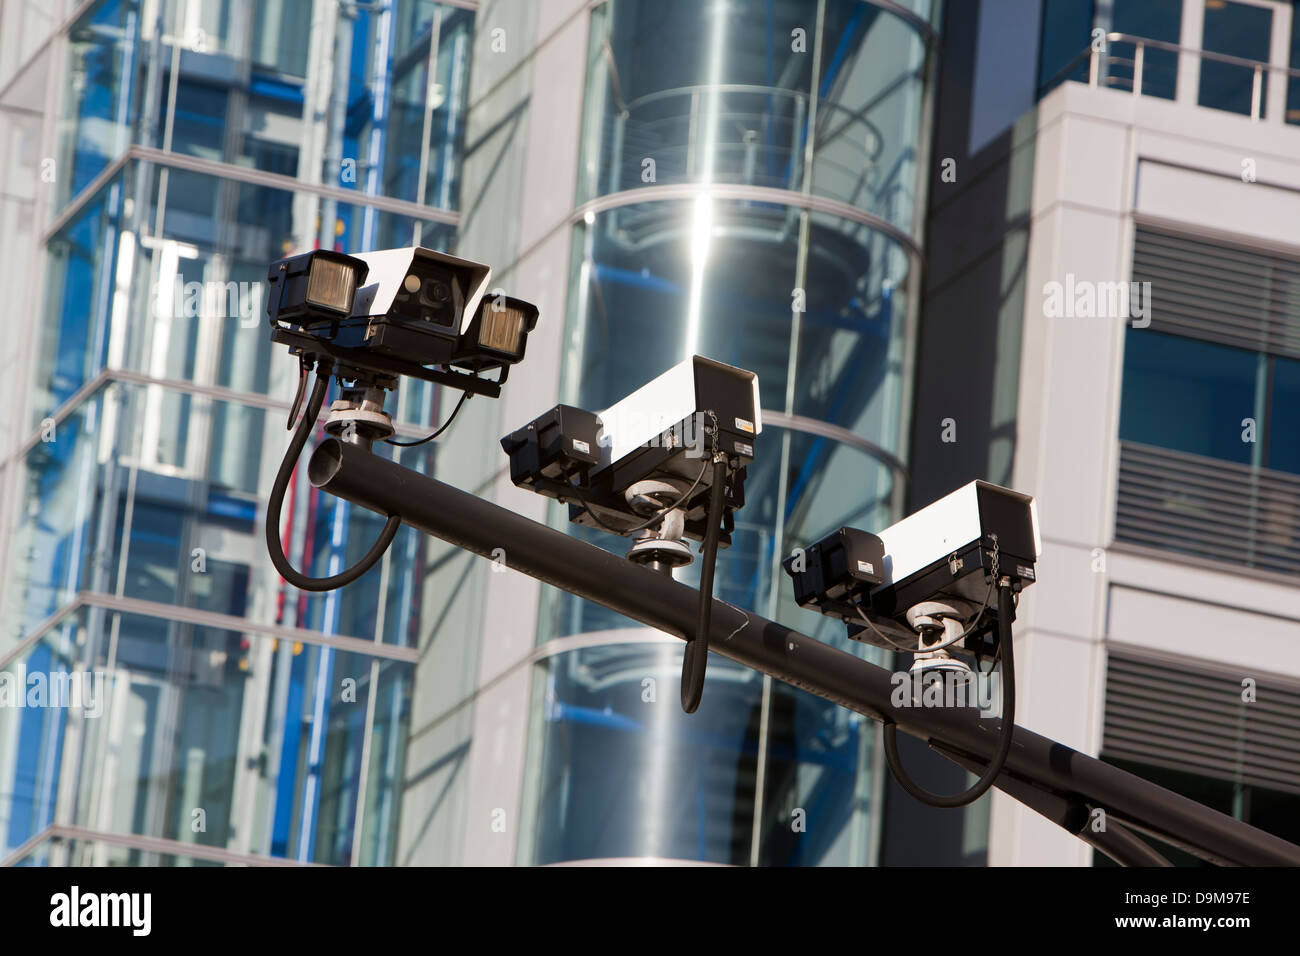 Traffic cameras in front of Tower Bridge, London, UK - Stock Image